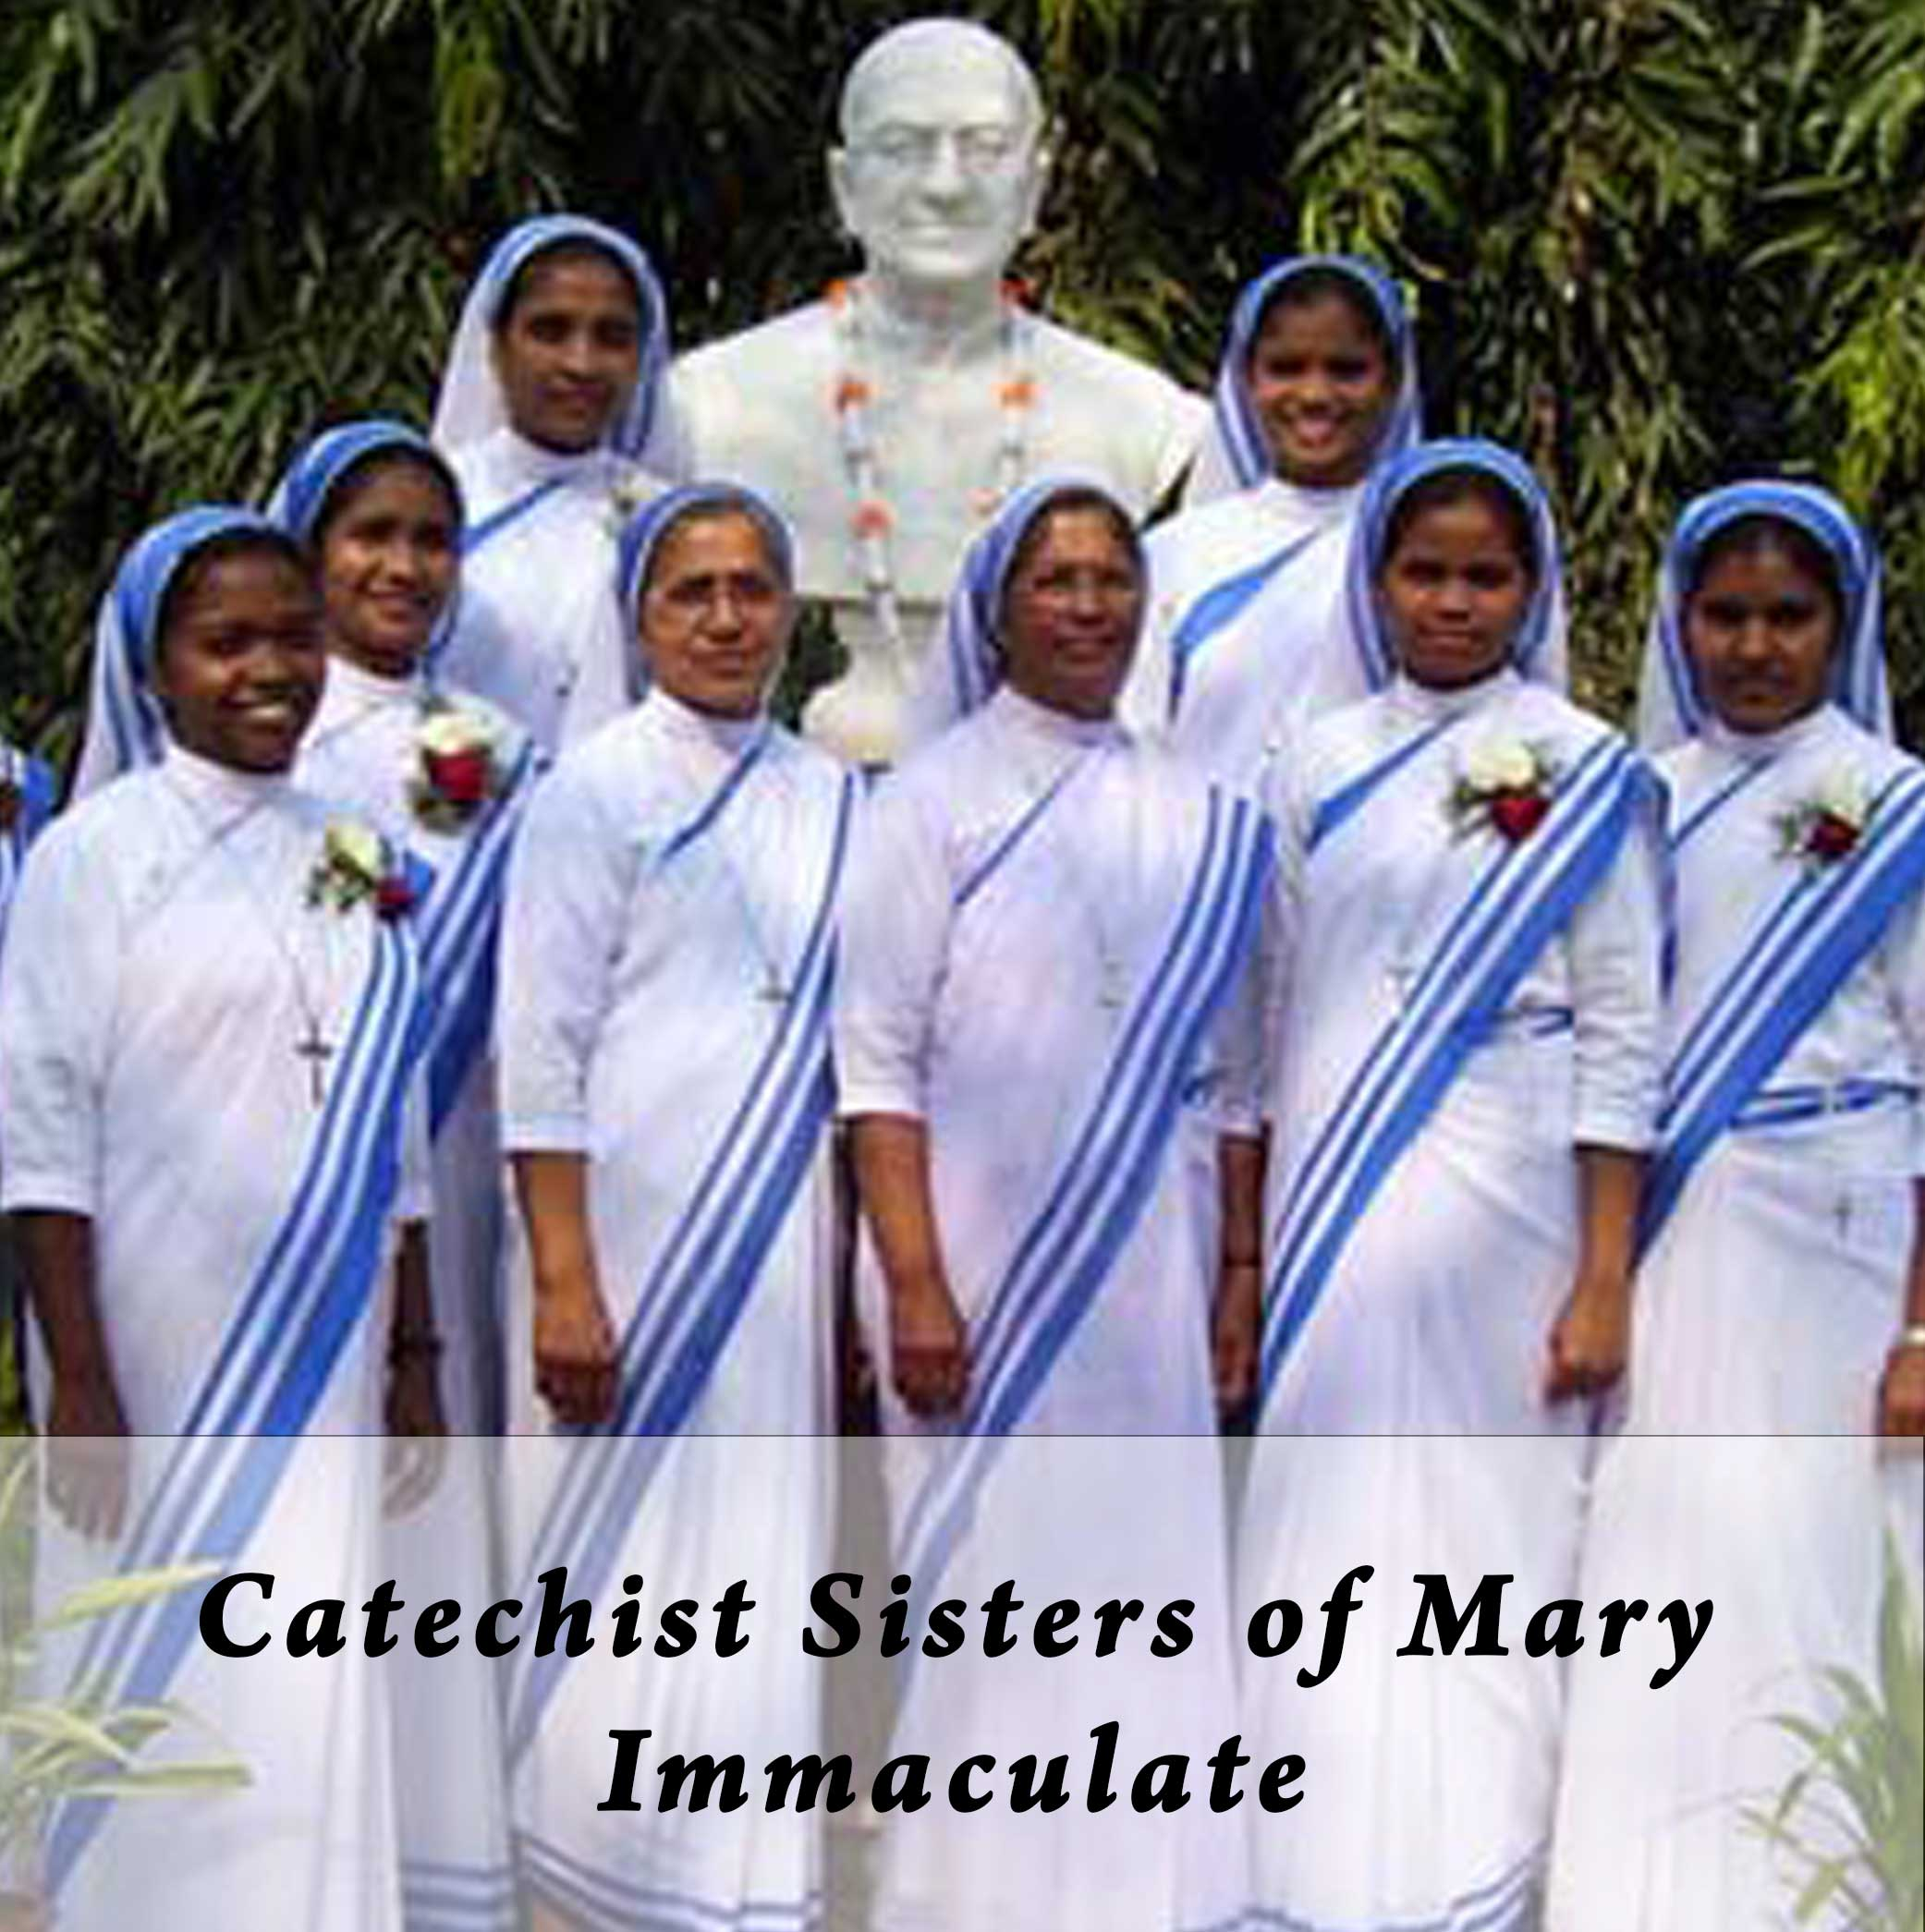 Sisters-of-Mary-Immaculate.jpg